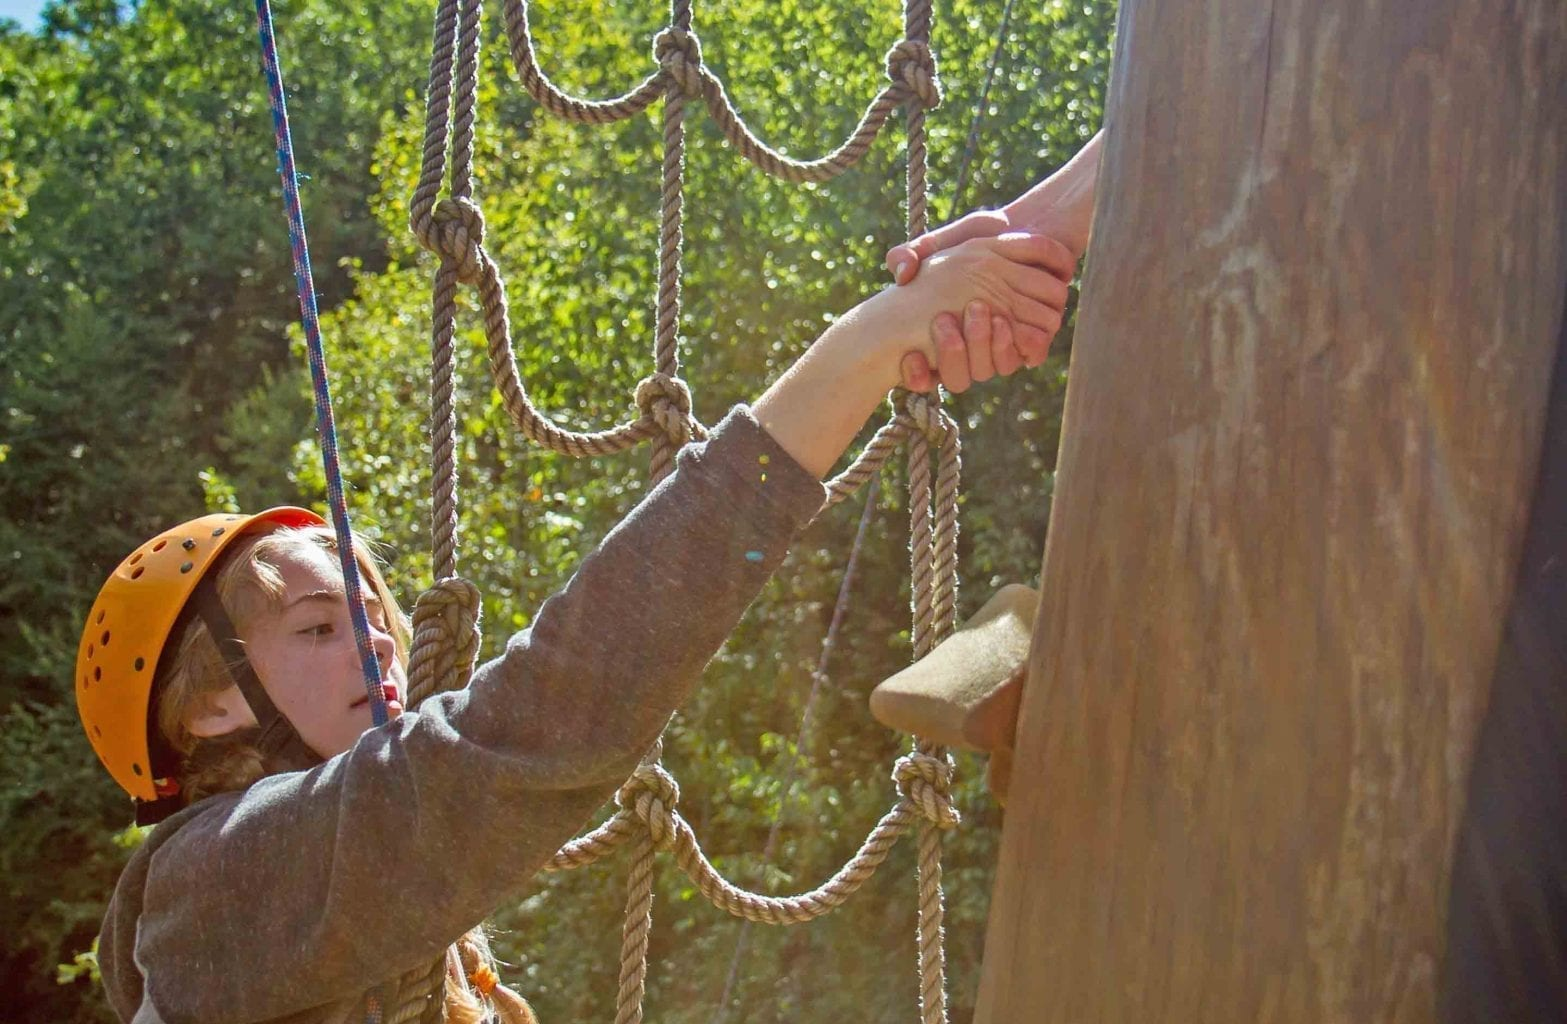 A kid climbs the ropes on the alpine tower on the Team Challenge Course at ACE Adventure Resort.